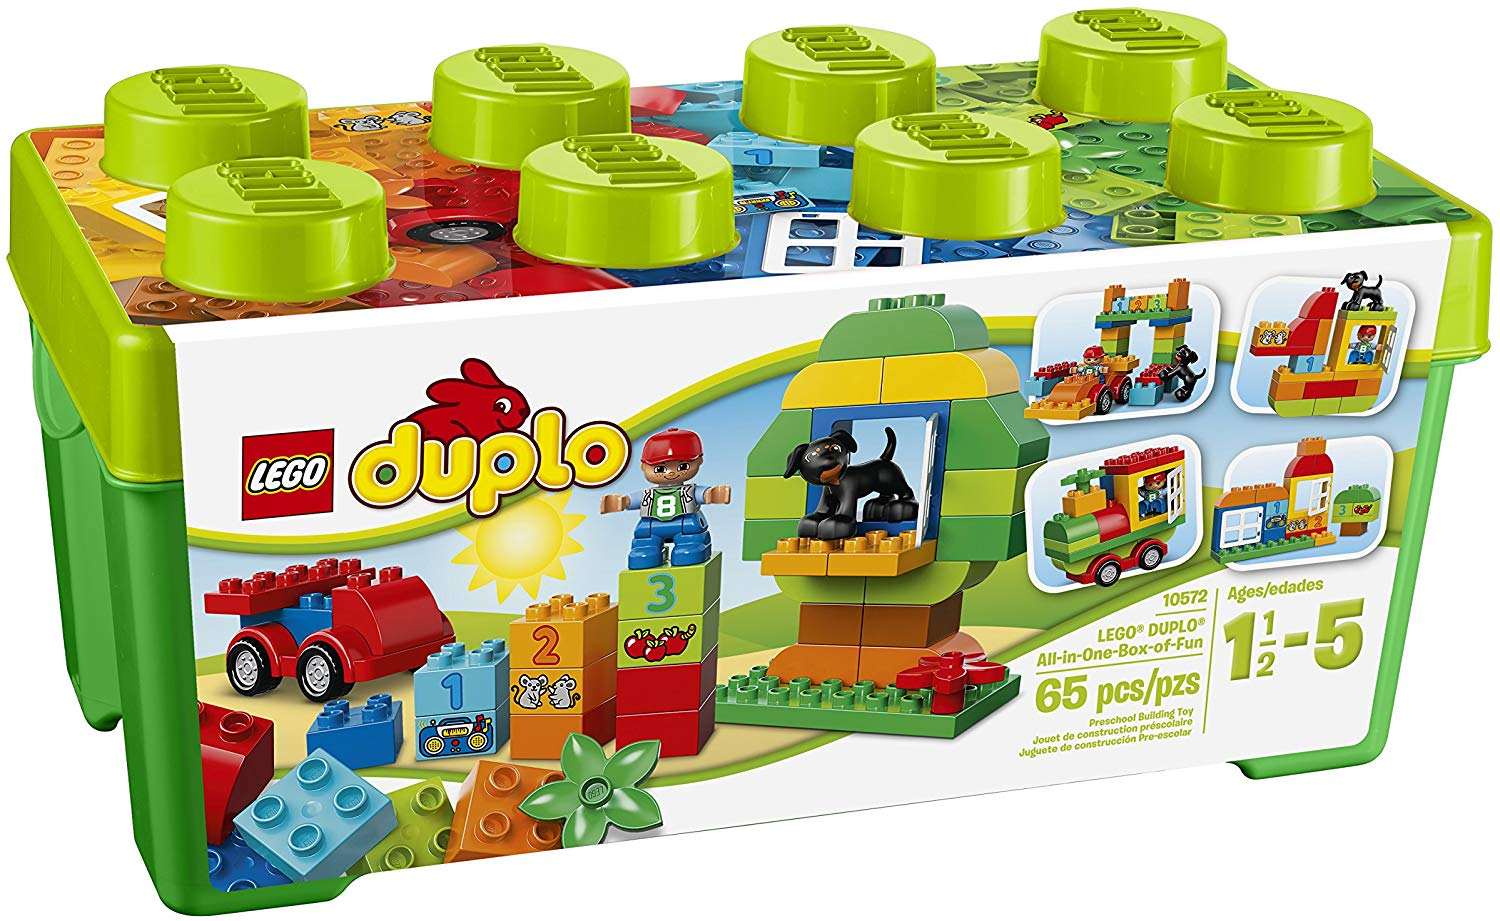 LEGO Duplo All In One Box of Fun - JKA Toys